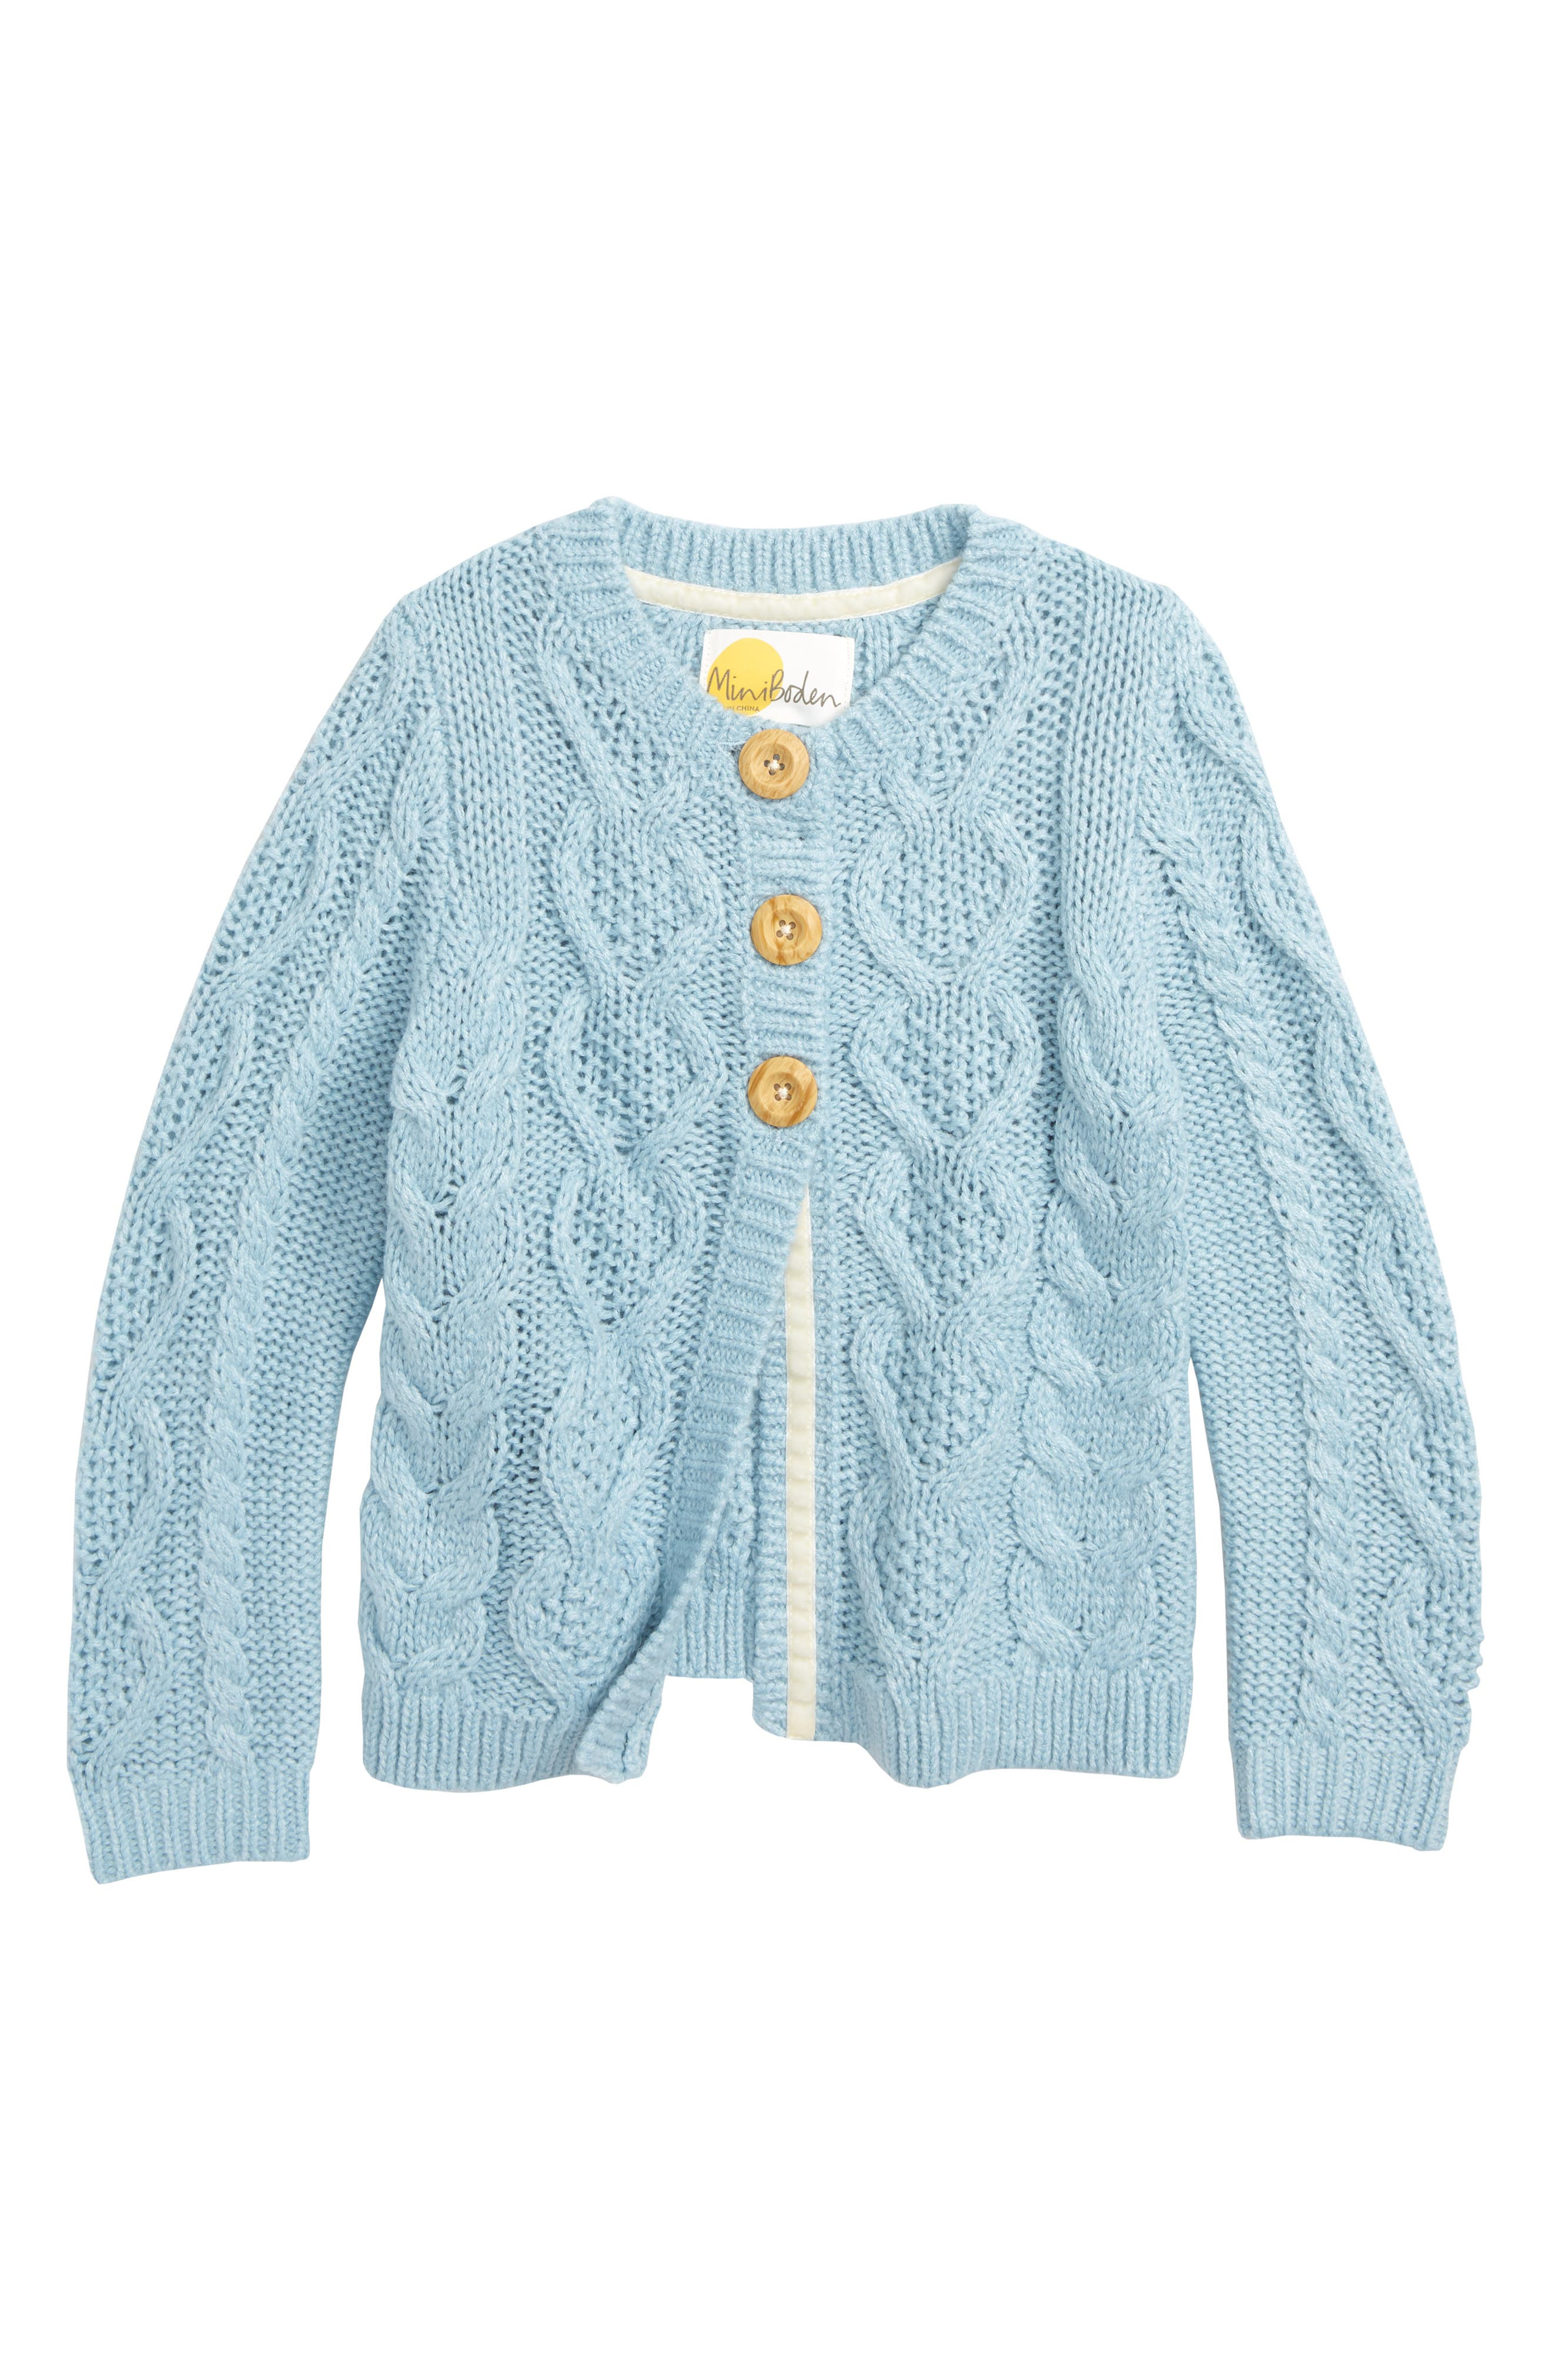 Cozy Cable Cardigan,                             Main thumbnail 1, color,                             ICE BLUE